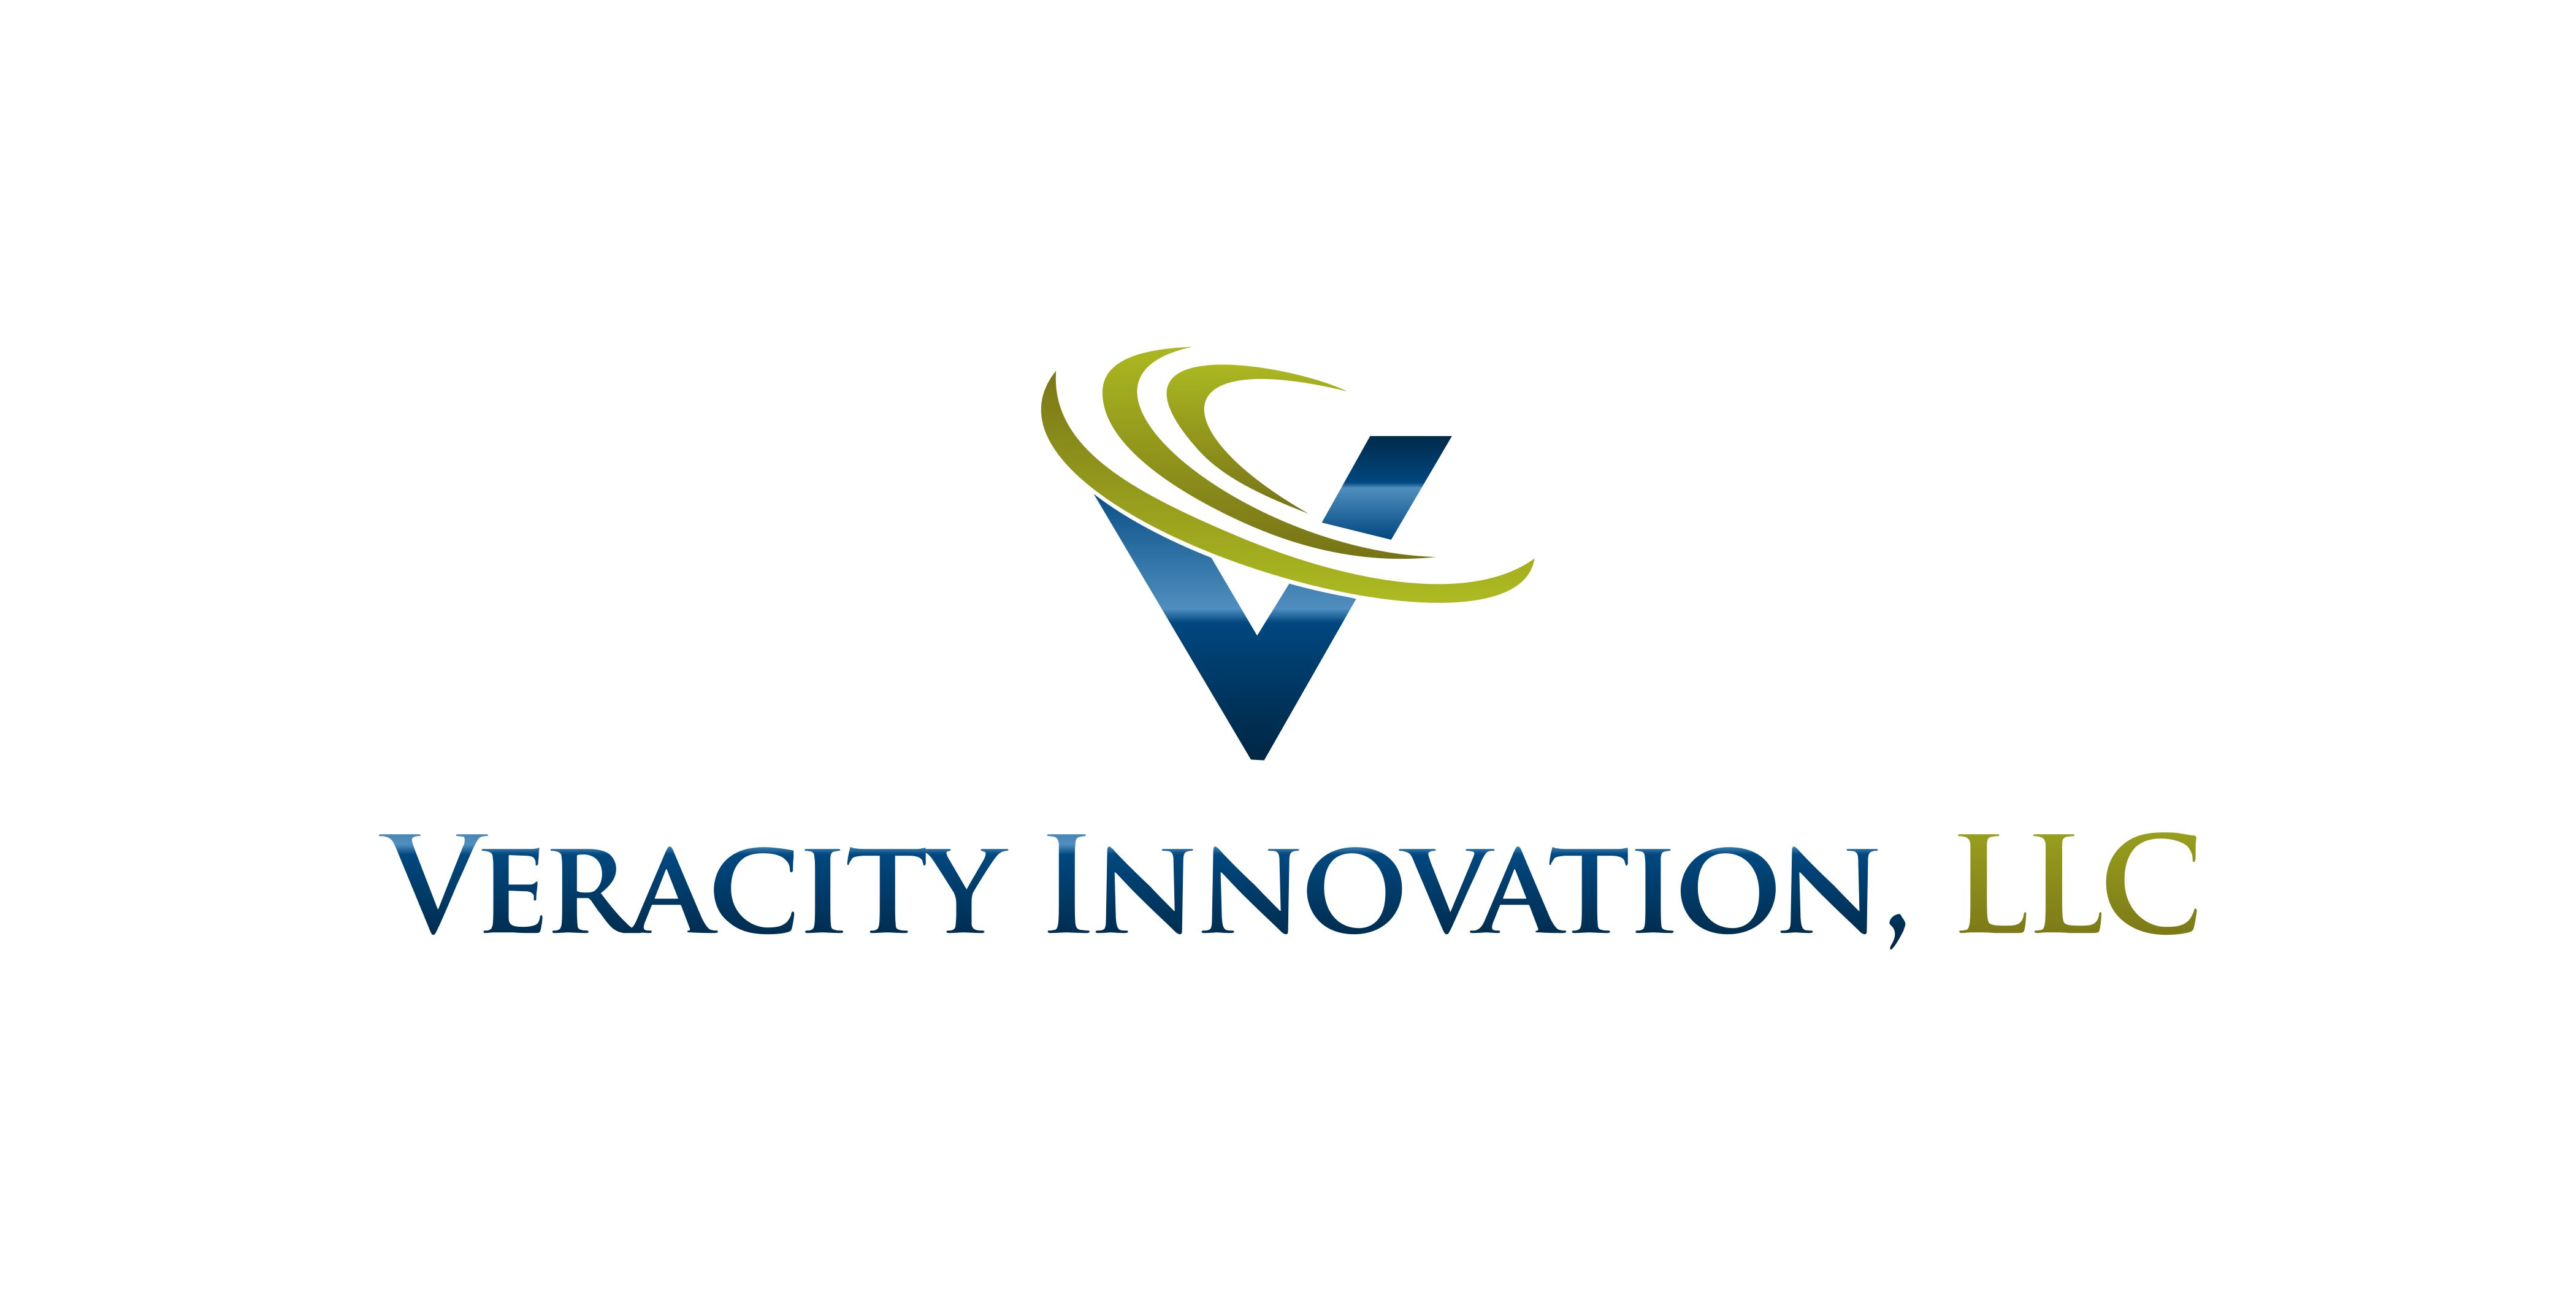 Logo Design by Muhammad Aslam - Entry No. 286 in the Logo Design Contest Creative Logo Design for Veracity Innovation, LLC.